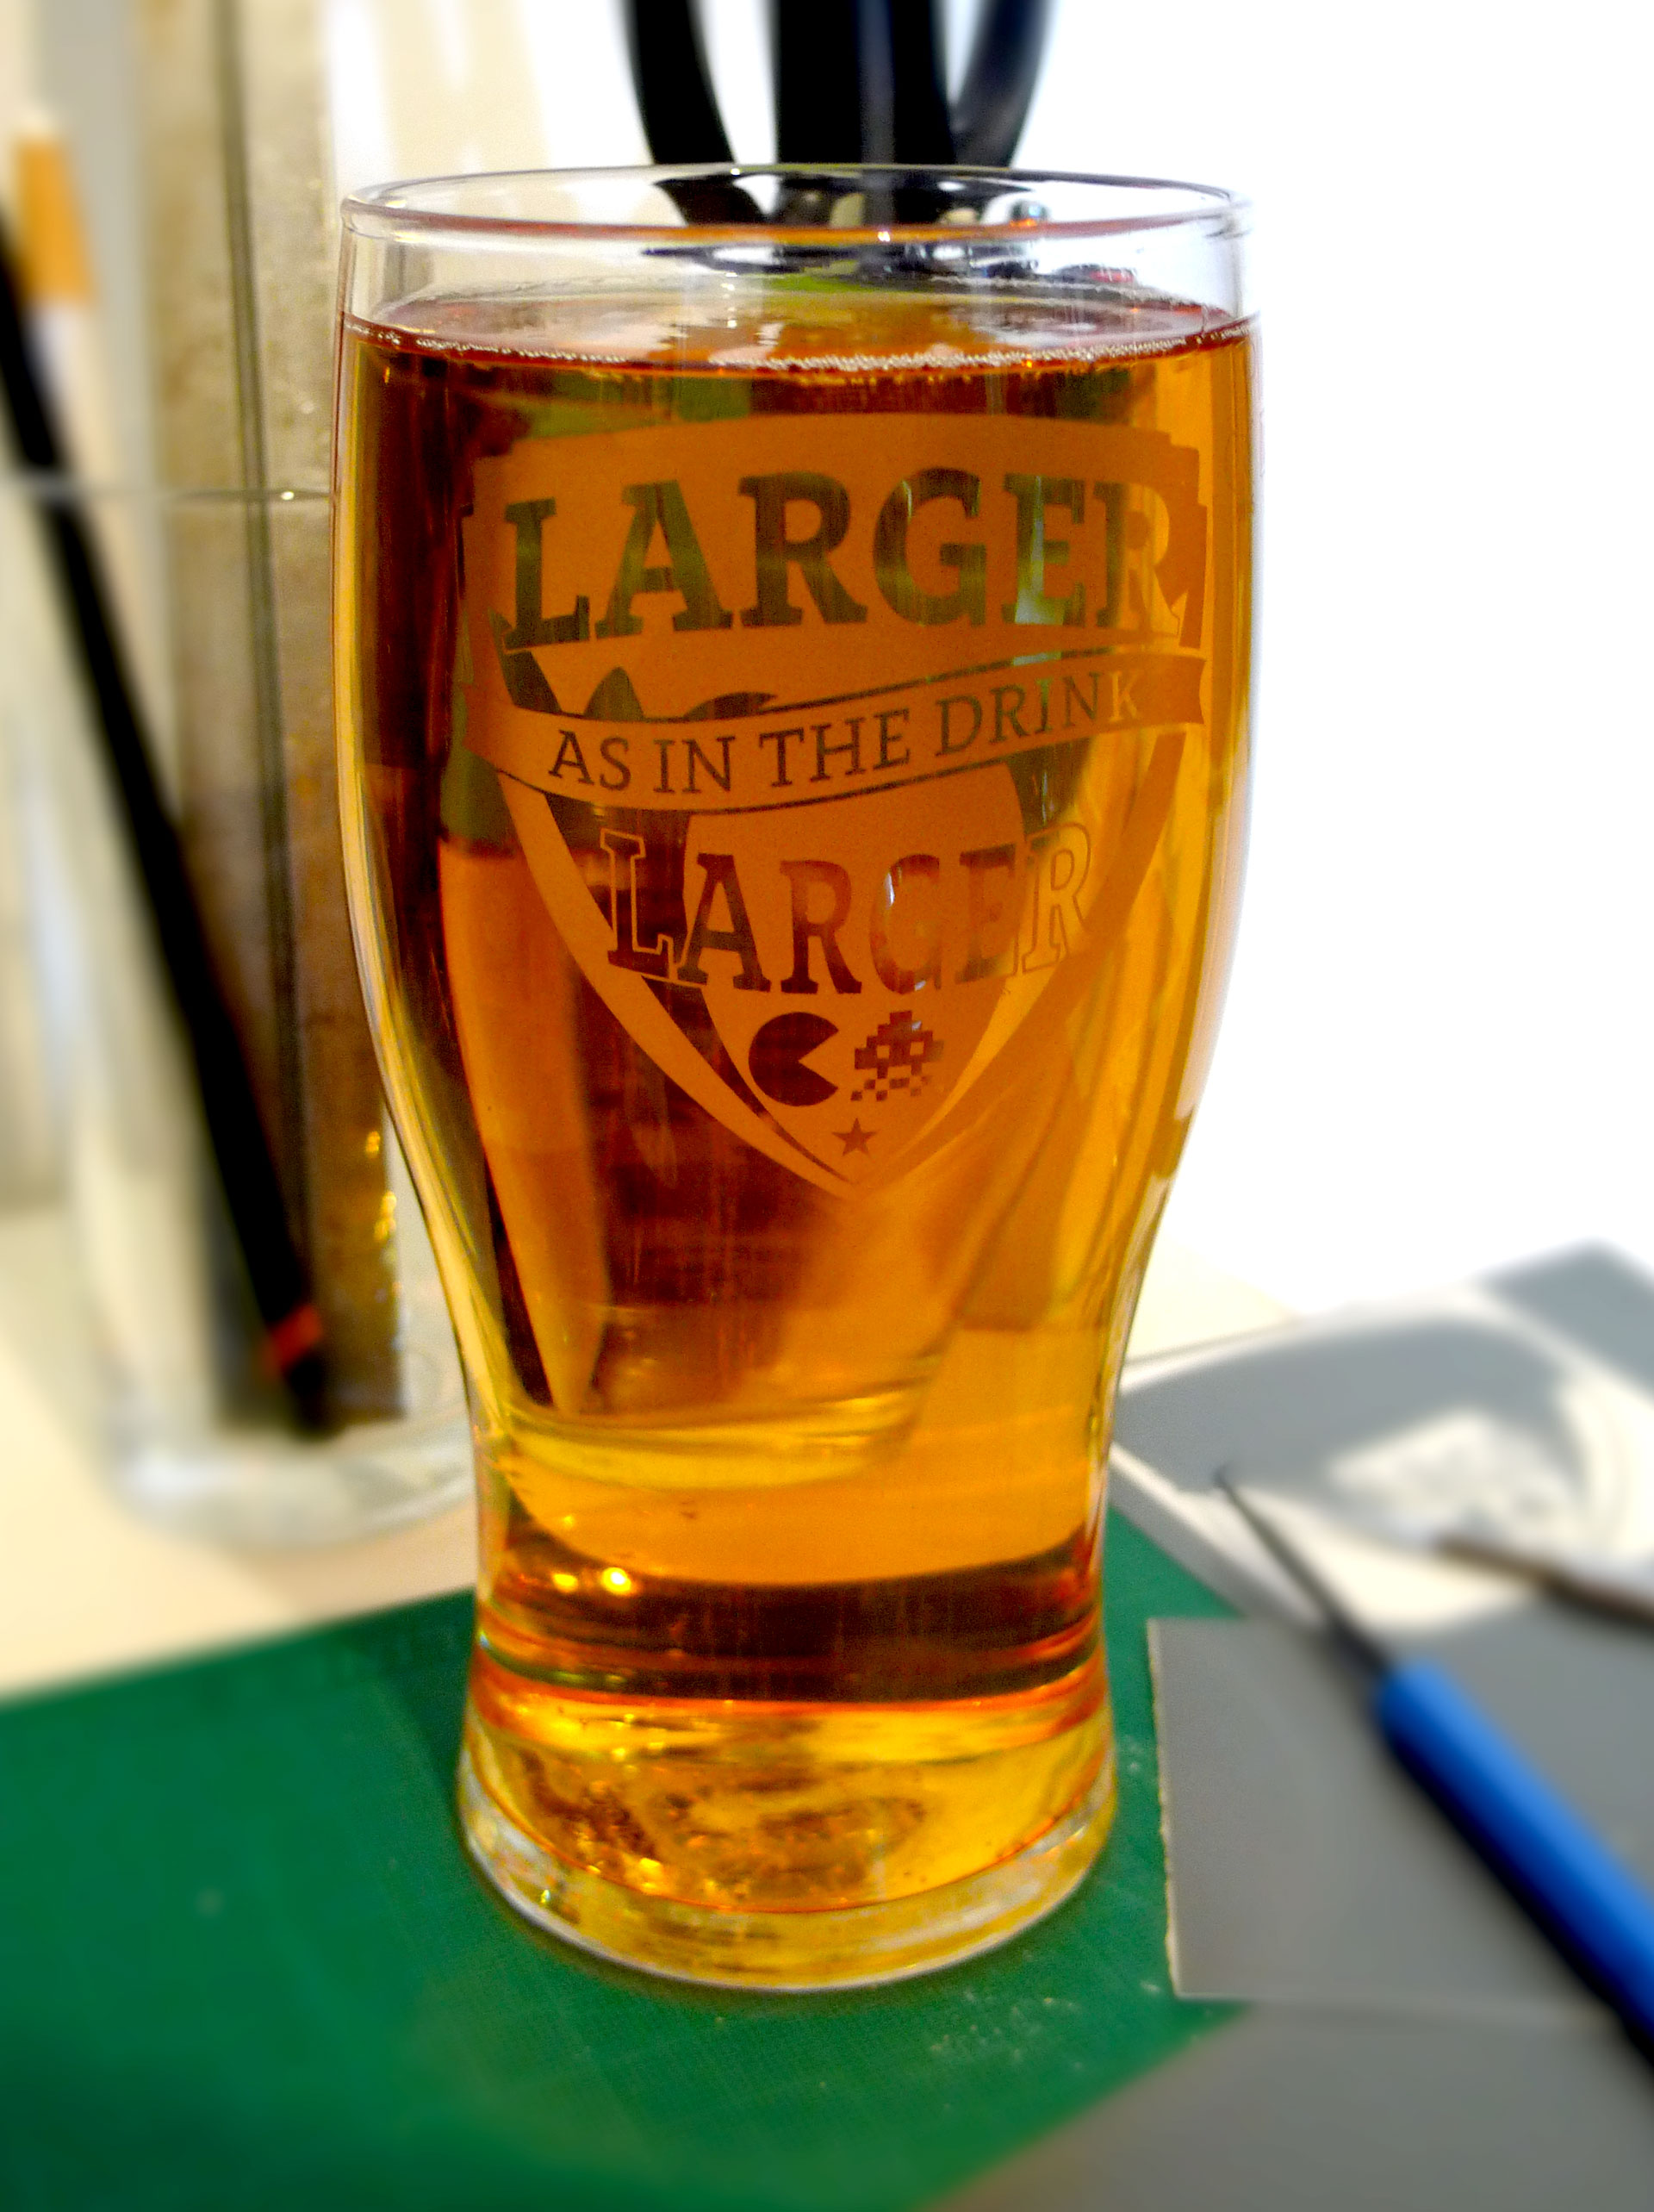 Larger As In The Drink Larger Pint Glass Grcade Shop